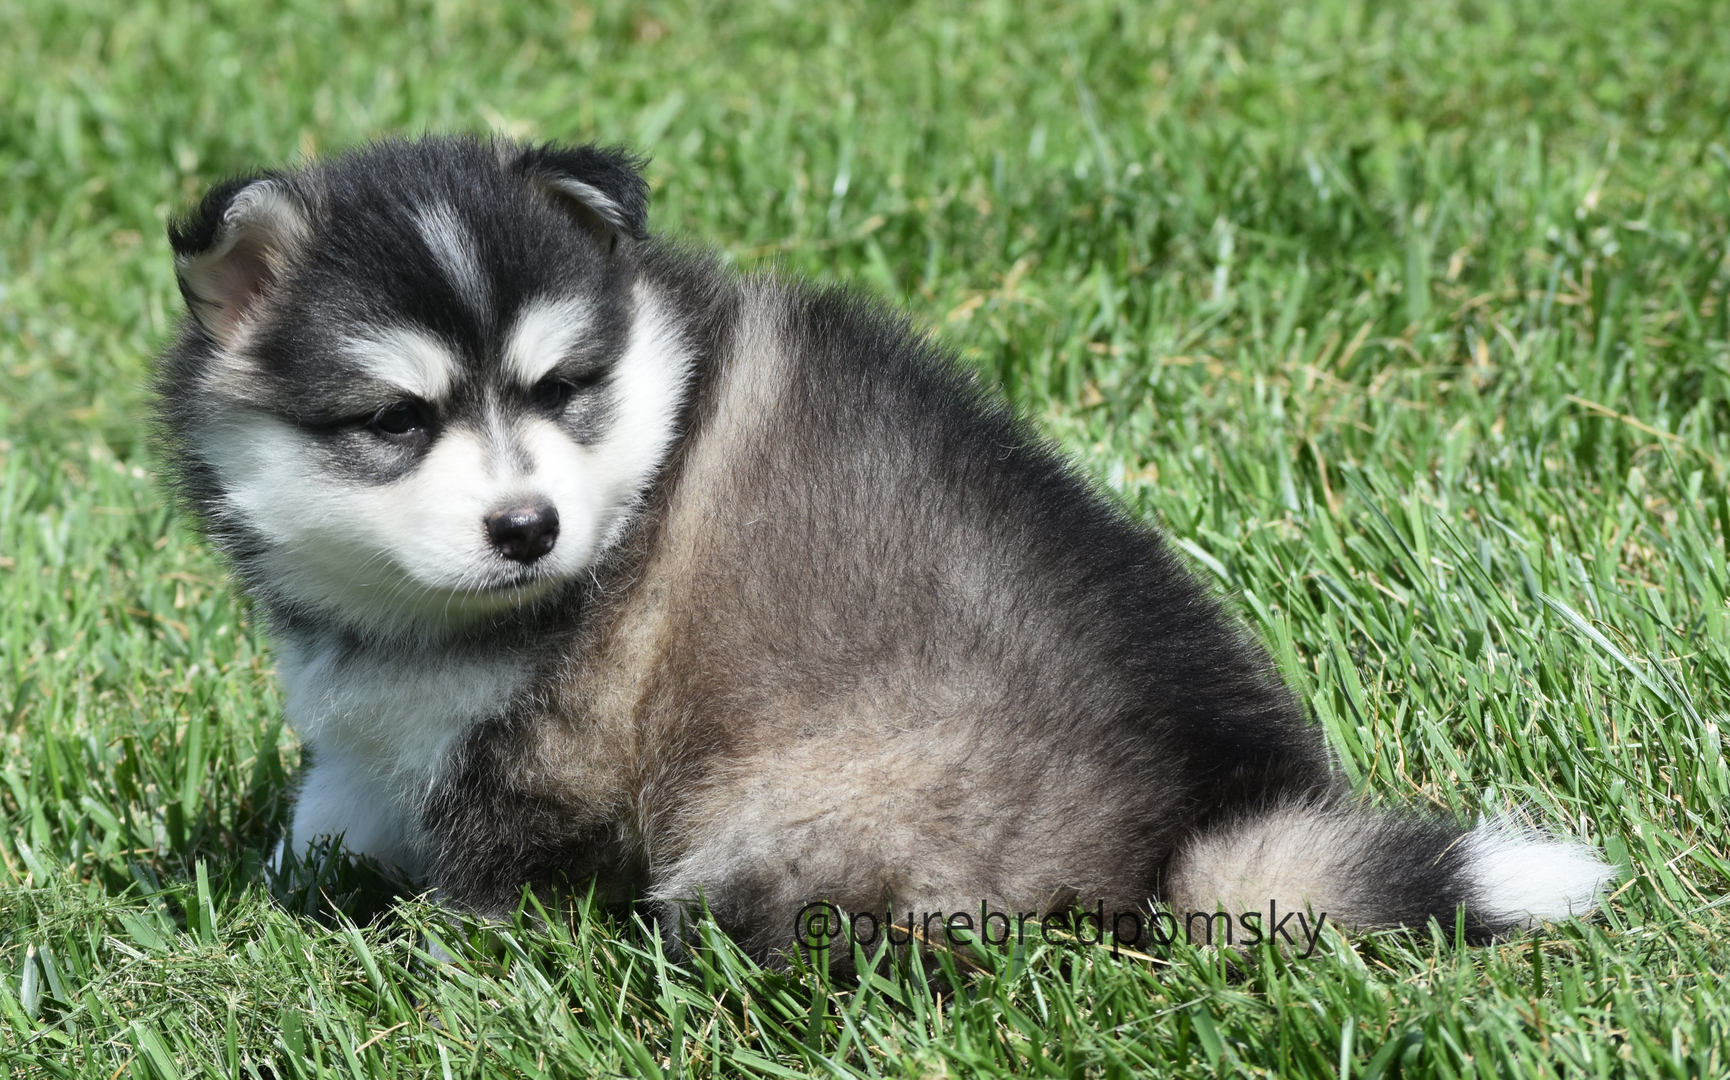 Pomsky Puppies For Sale - Registered and Pedigreed